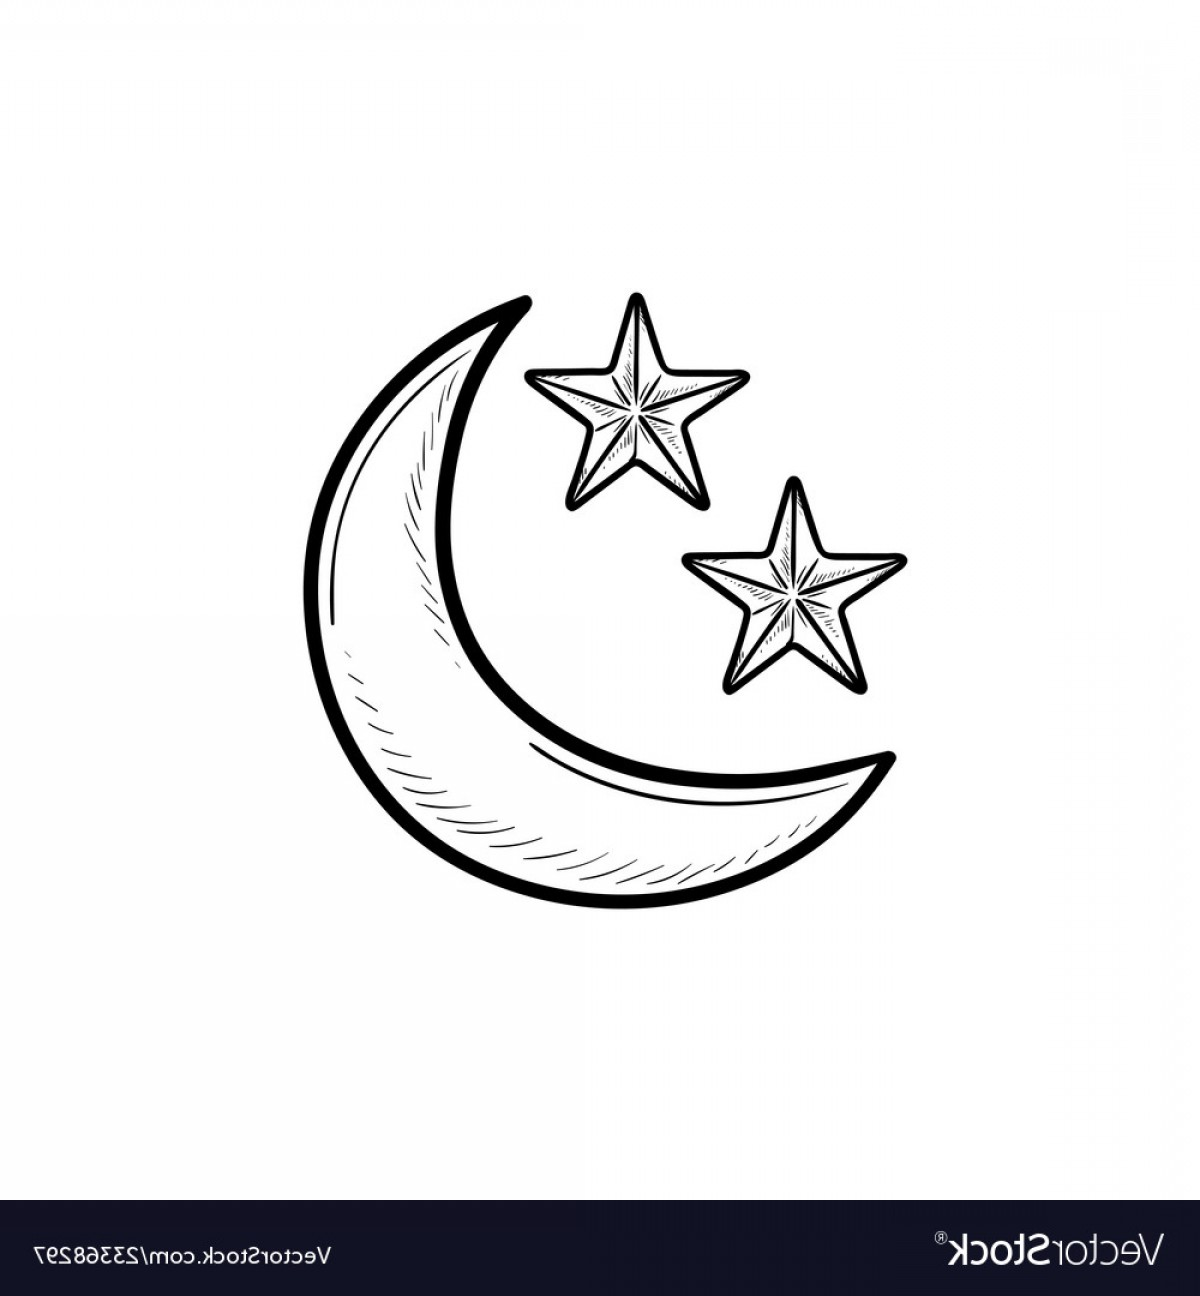 Star And Crescent Moon Vector: Crescent Moon And Stars Hand Drawn Outline Doodle Vector